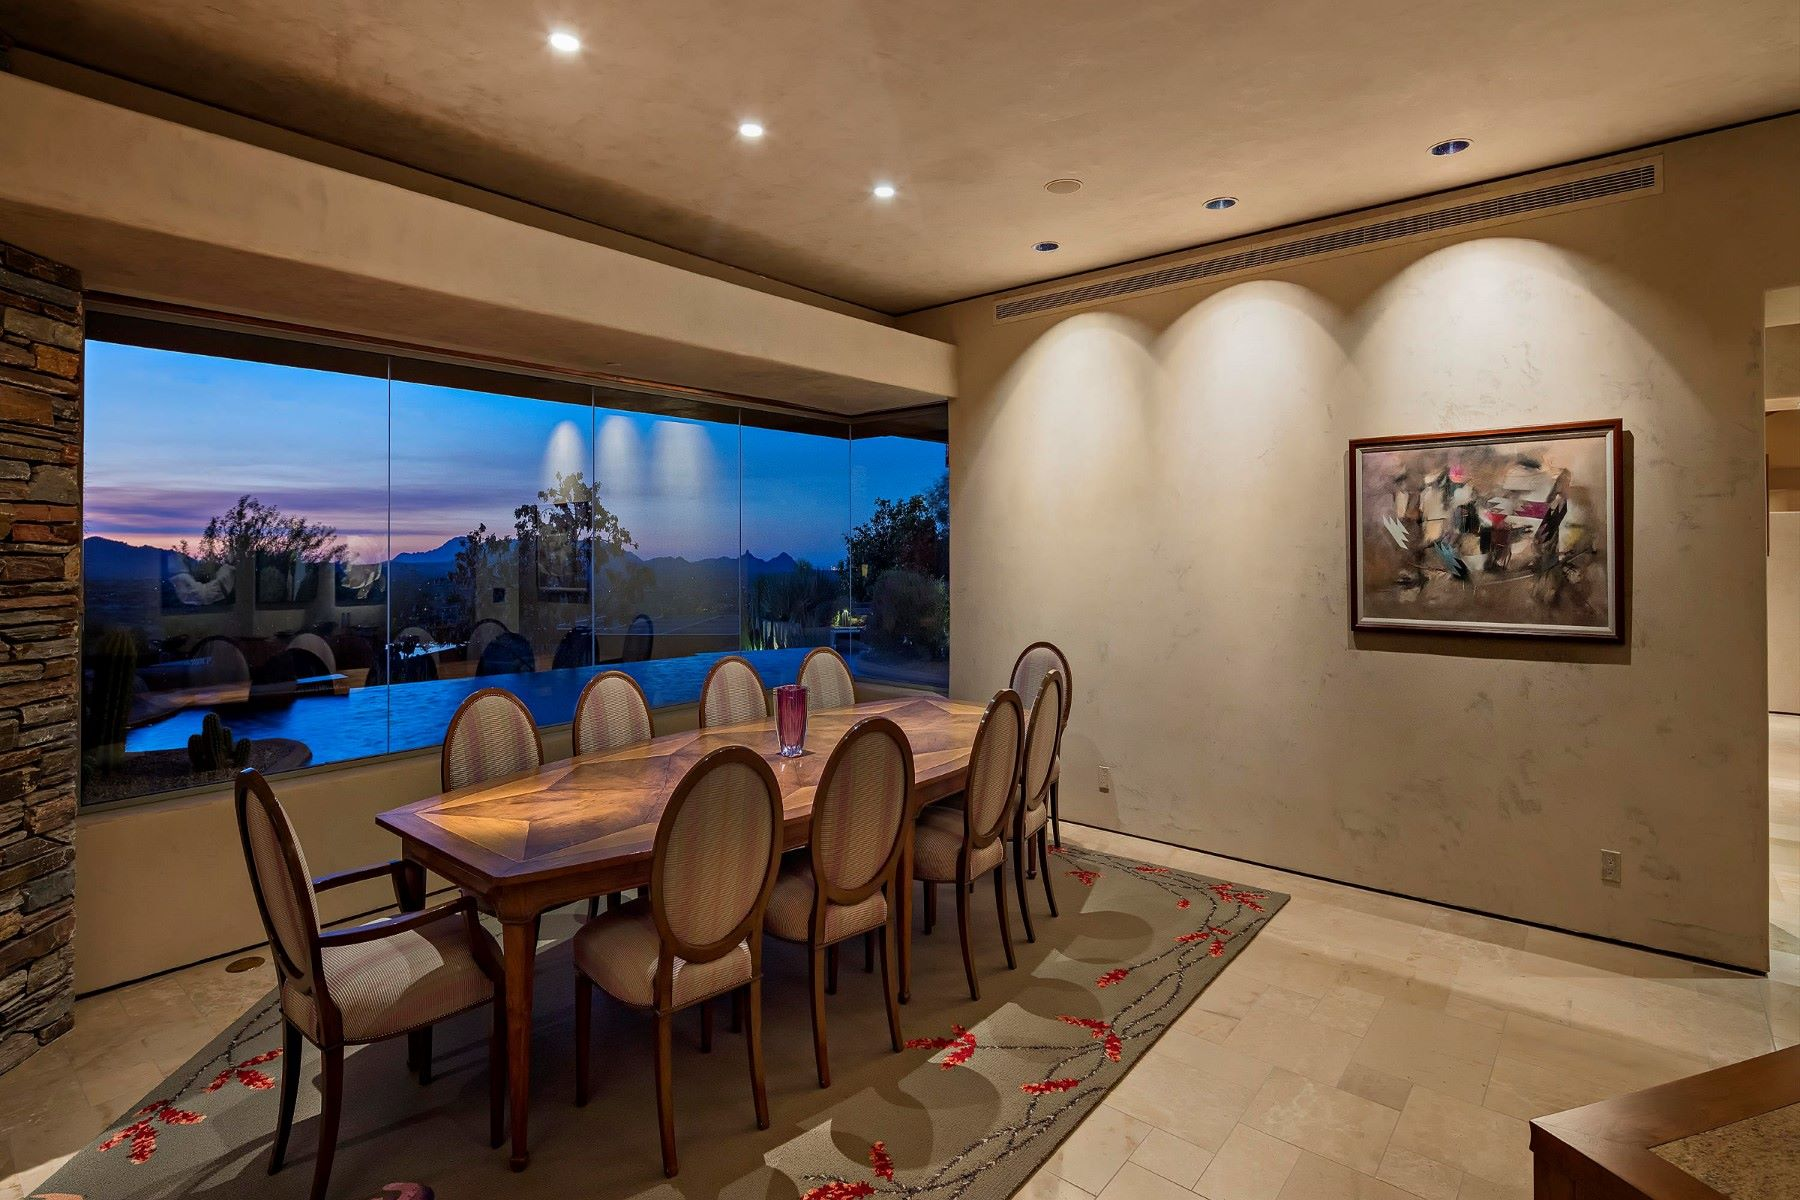 Additional photo for property listing at Timeless contemporary estate in Desert Mountain 9625 E Aw Tillinghast Rd Scottsdale, Arizona 85262 United States